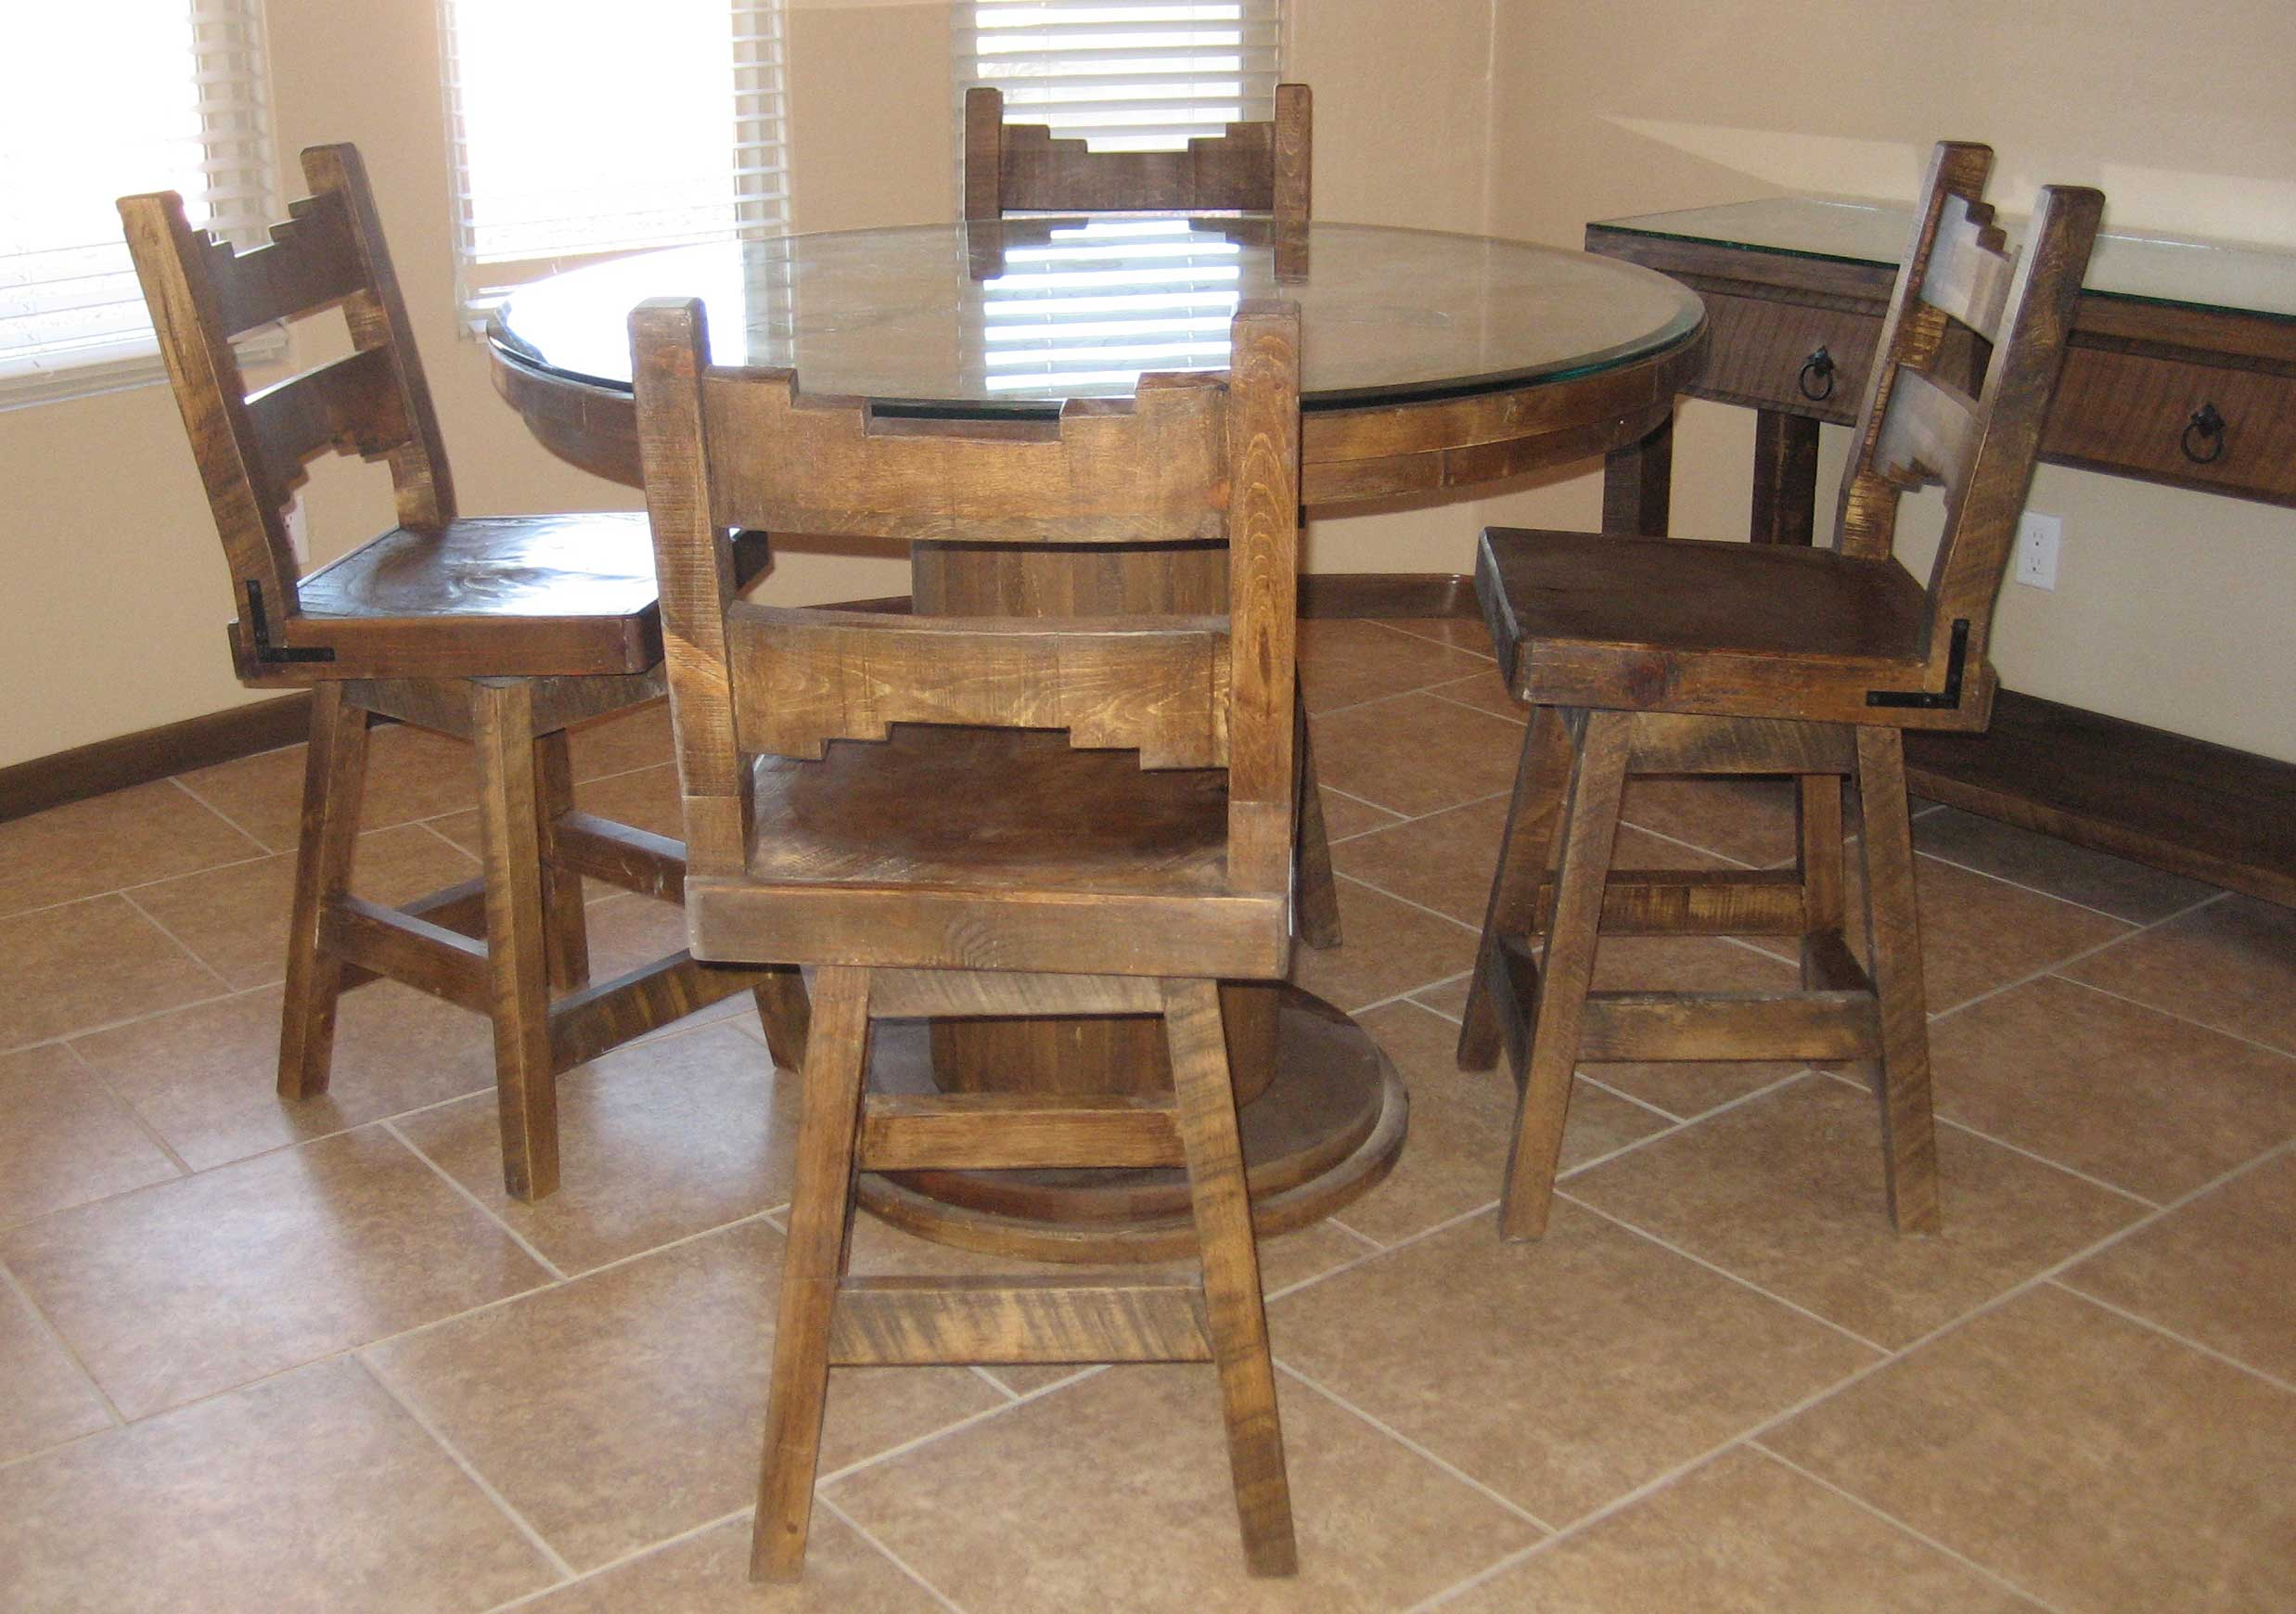 Small 4 Chair Kitchen Table Best Kitchen Ideas 2017 – Round Kitchen Table with 4 Chairs